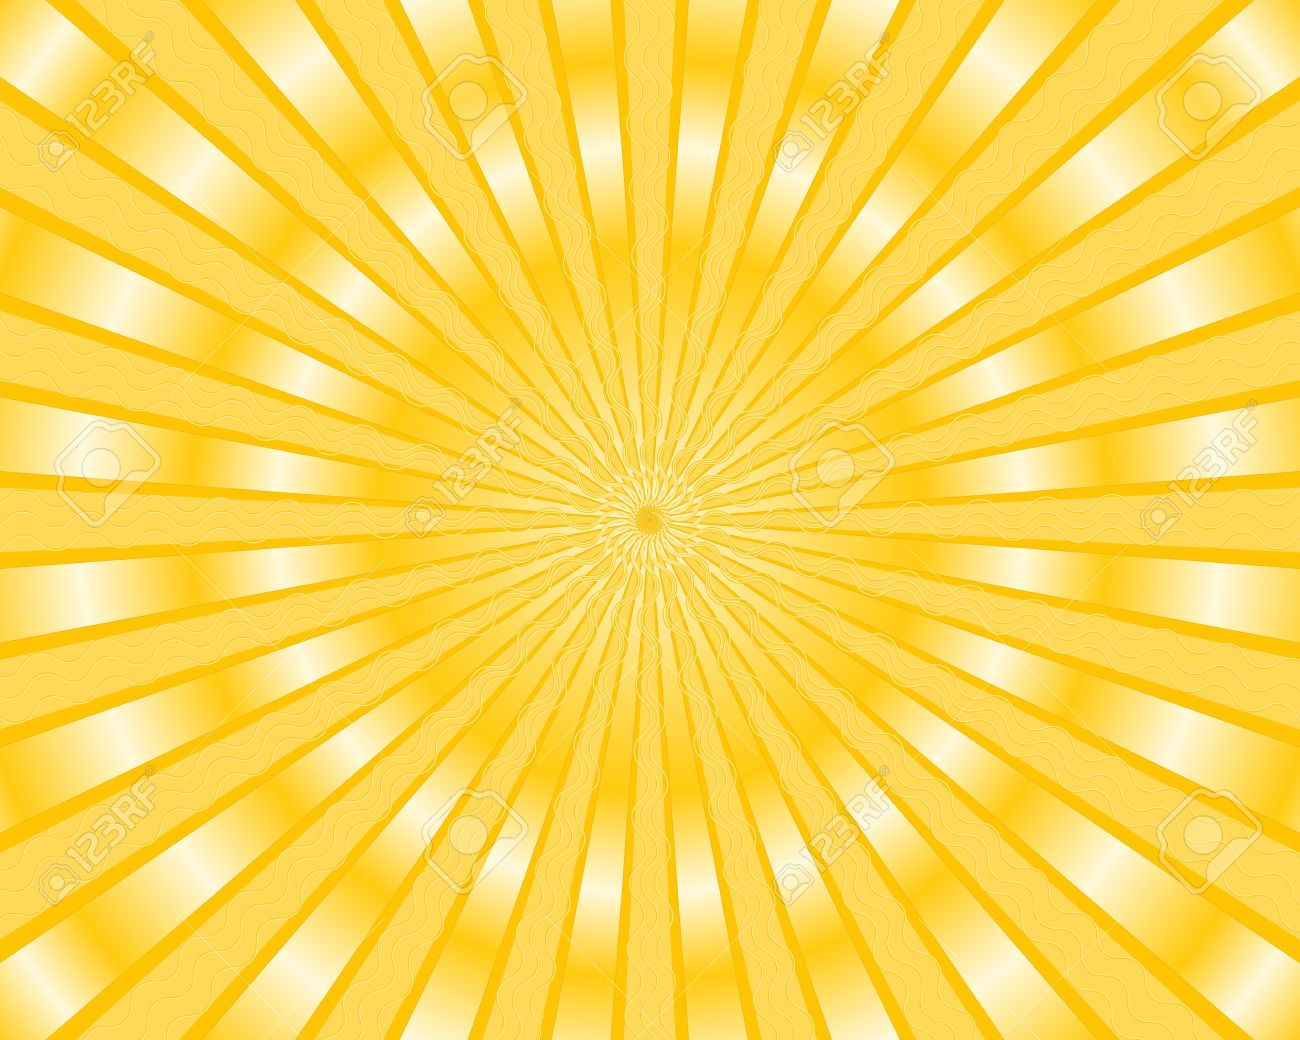 vector yellow stripes background with golden rays